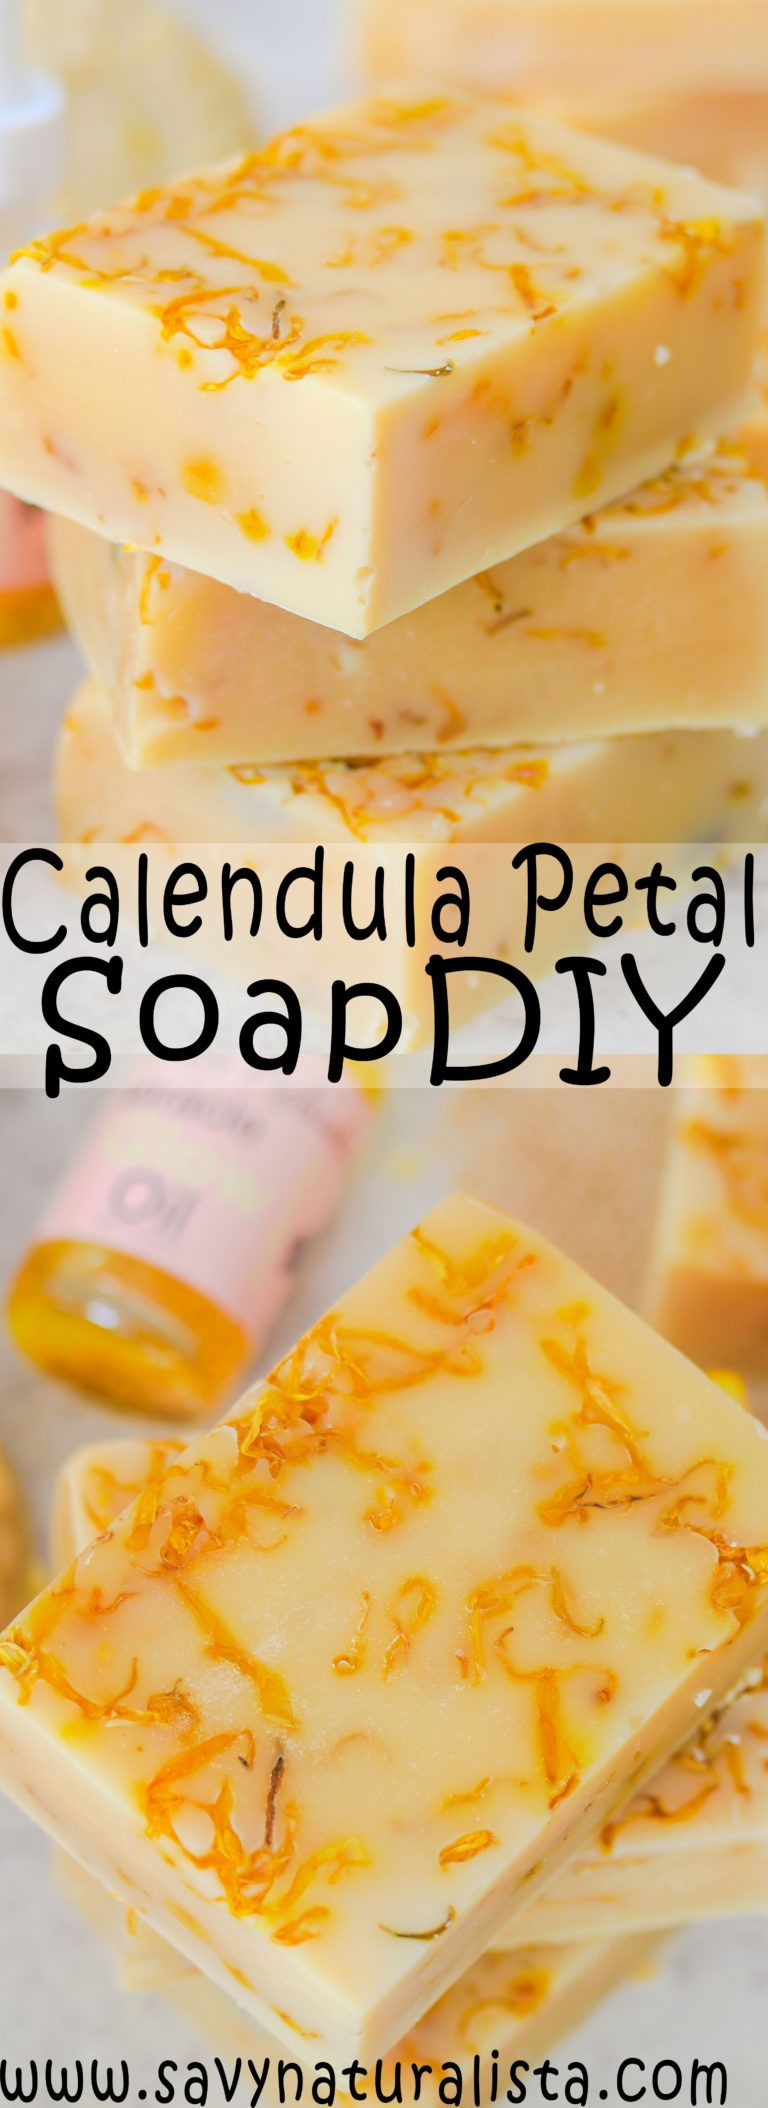 Calendula Oil Cold Process Soap is not only an easy beginner recipe, but it's made with real calendula oil and flowers for an all-natural soap that is soothing and gentle to the skin! #skincare #soapmaking #soap #beginnersoapmaking #calendulasoap #DIY #miracleglowoil